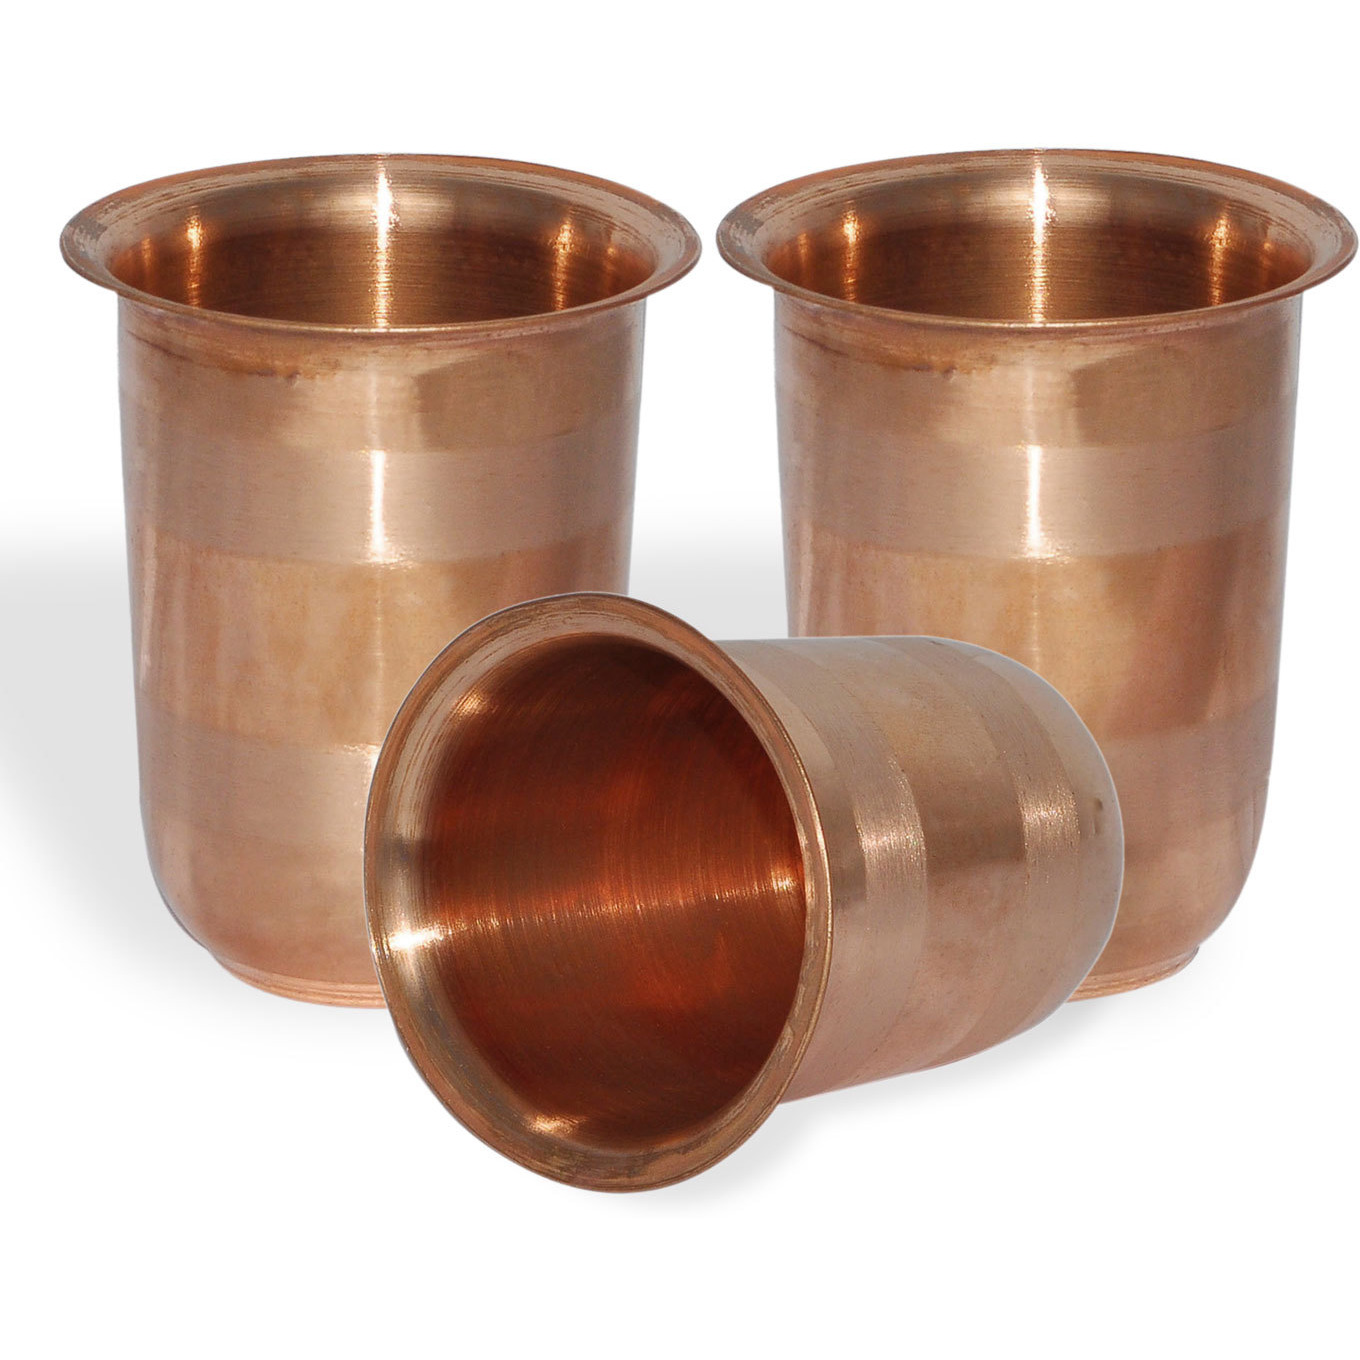 Set of 3 - Prisha India Craft B. Drinking Copper Glass Tumbler Handmade Water Glasses - Copper Cup - Traveller's Copper Mug for Ayurveda Benefits